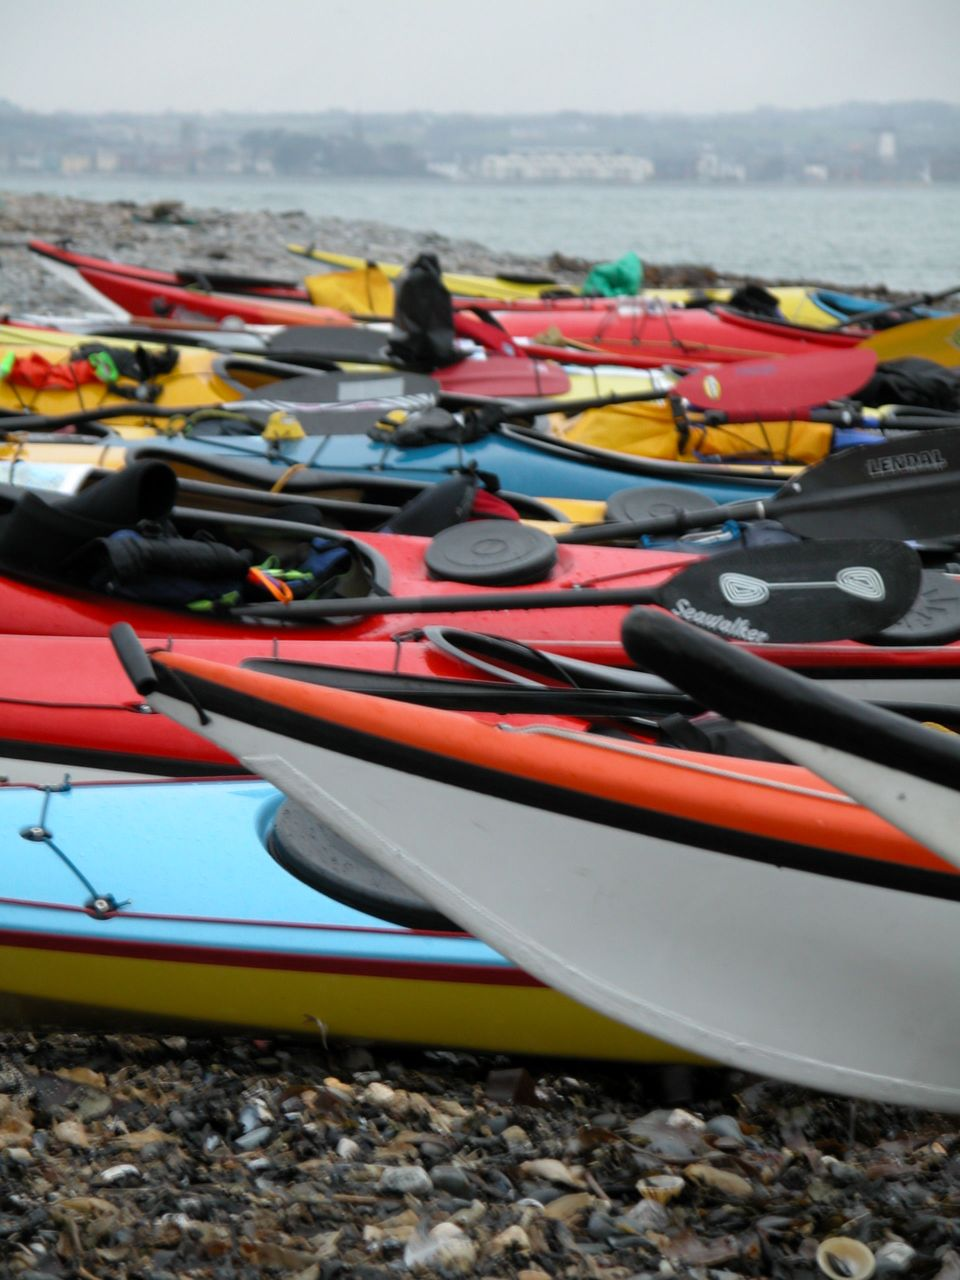 Boats on beach at Skerries